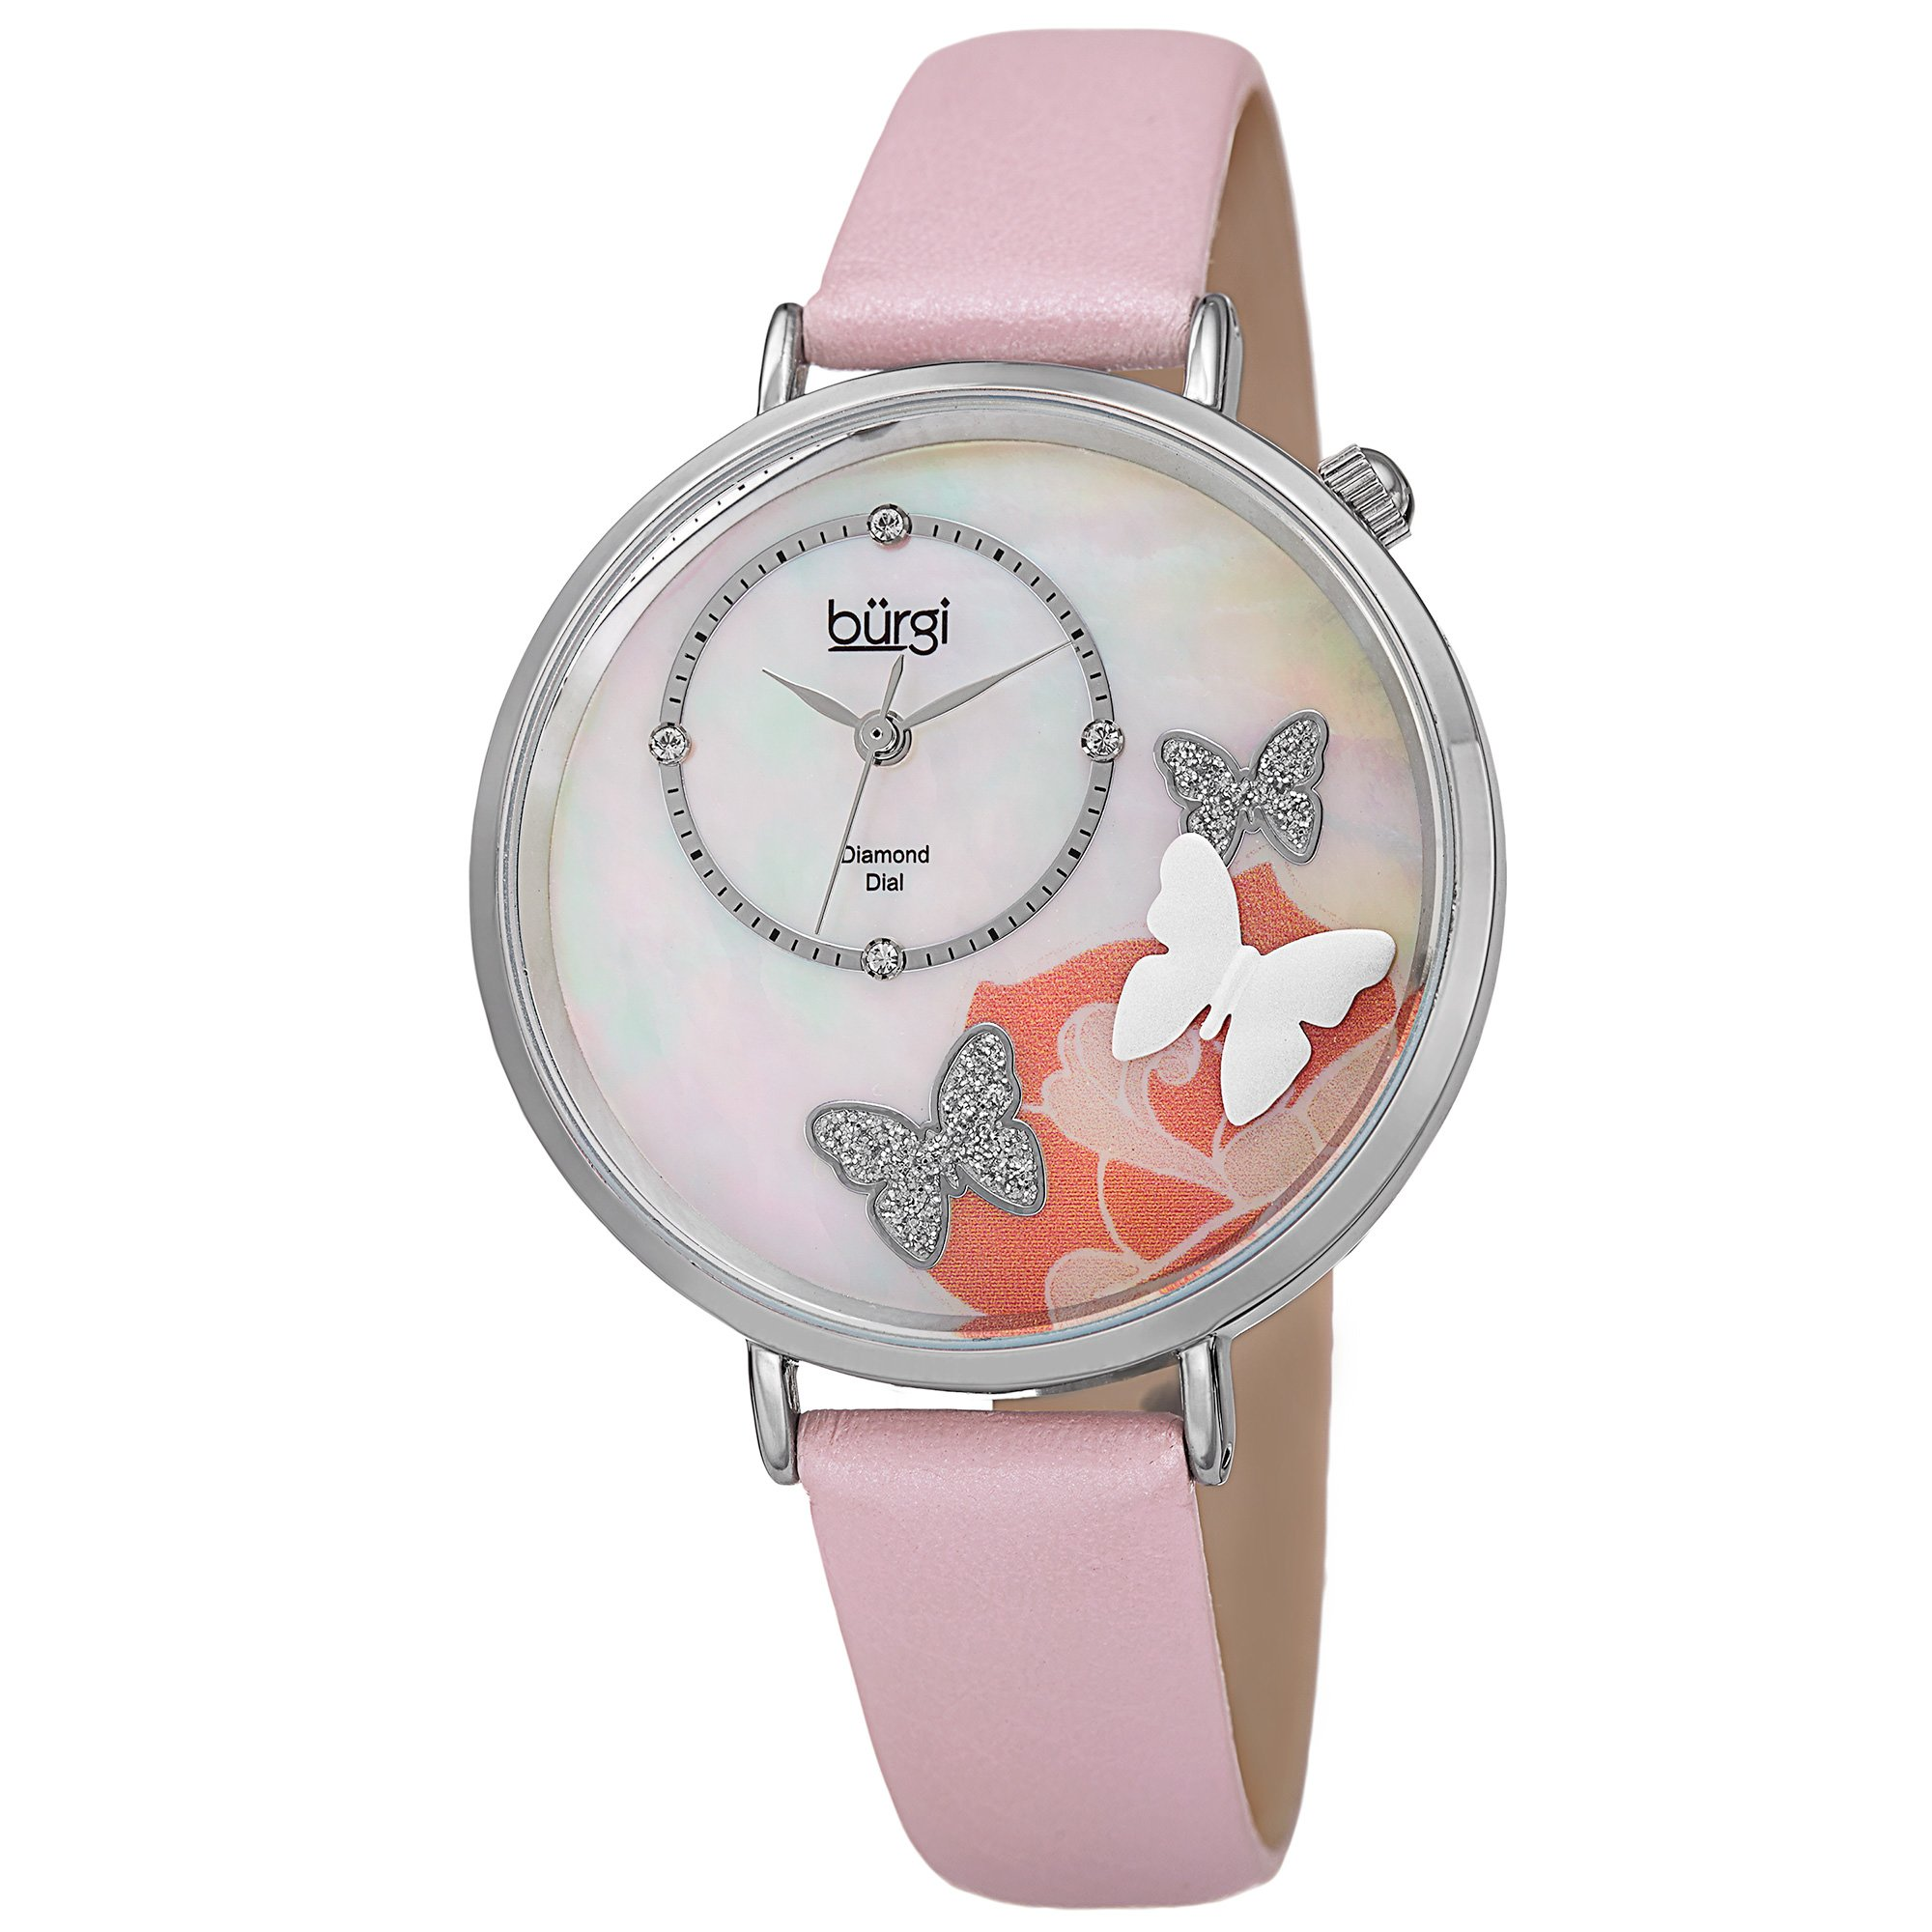 Burgi Women's BUR186 Series Floral Print Watch with Rose Gold & Black Leather Strap - Packed in a Beautiful Gift Box (Butterfly Pink)